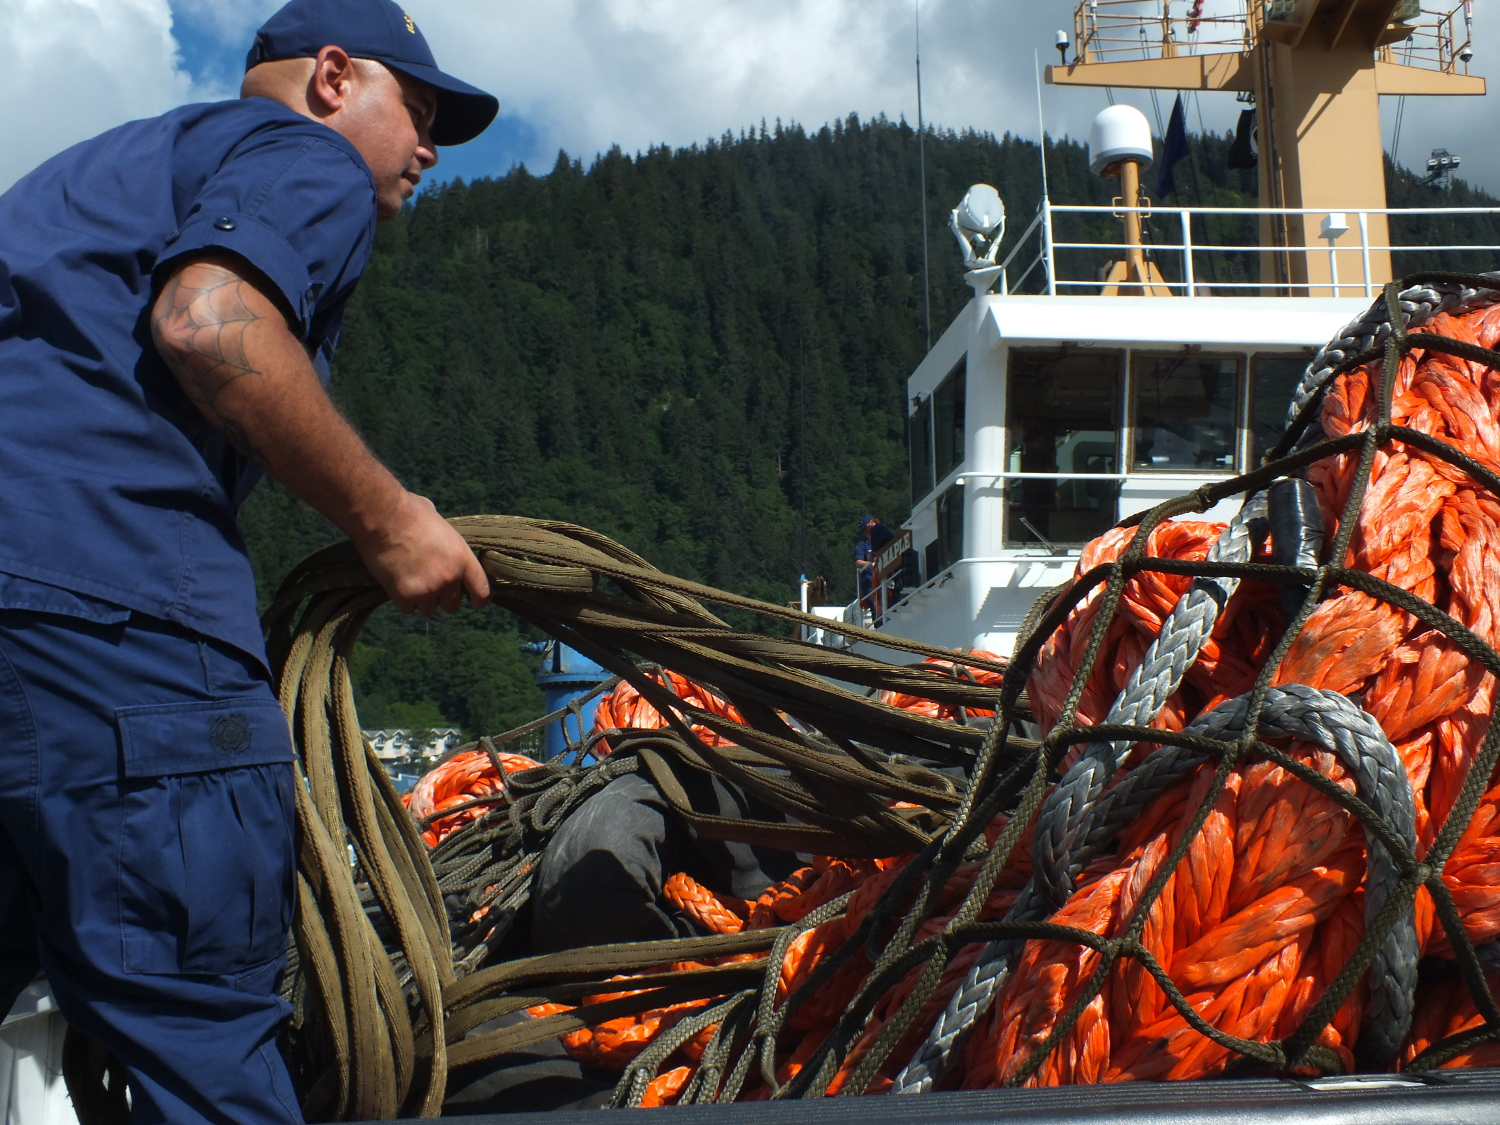 After use, the components of this Emergency Towing System will be dried out and repackaged for redeployment in Sitka. (Photo by Matt Miller/KTOO)